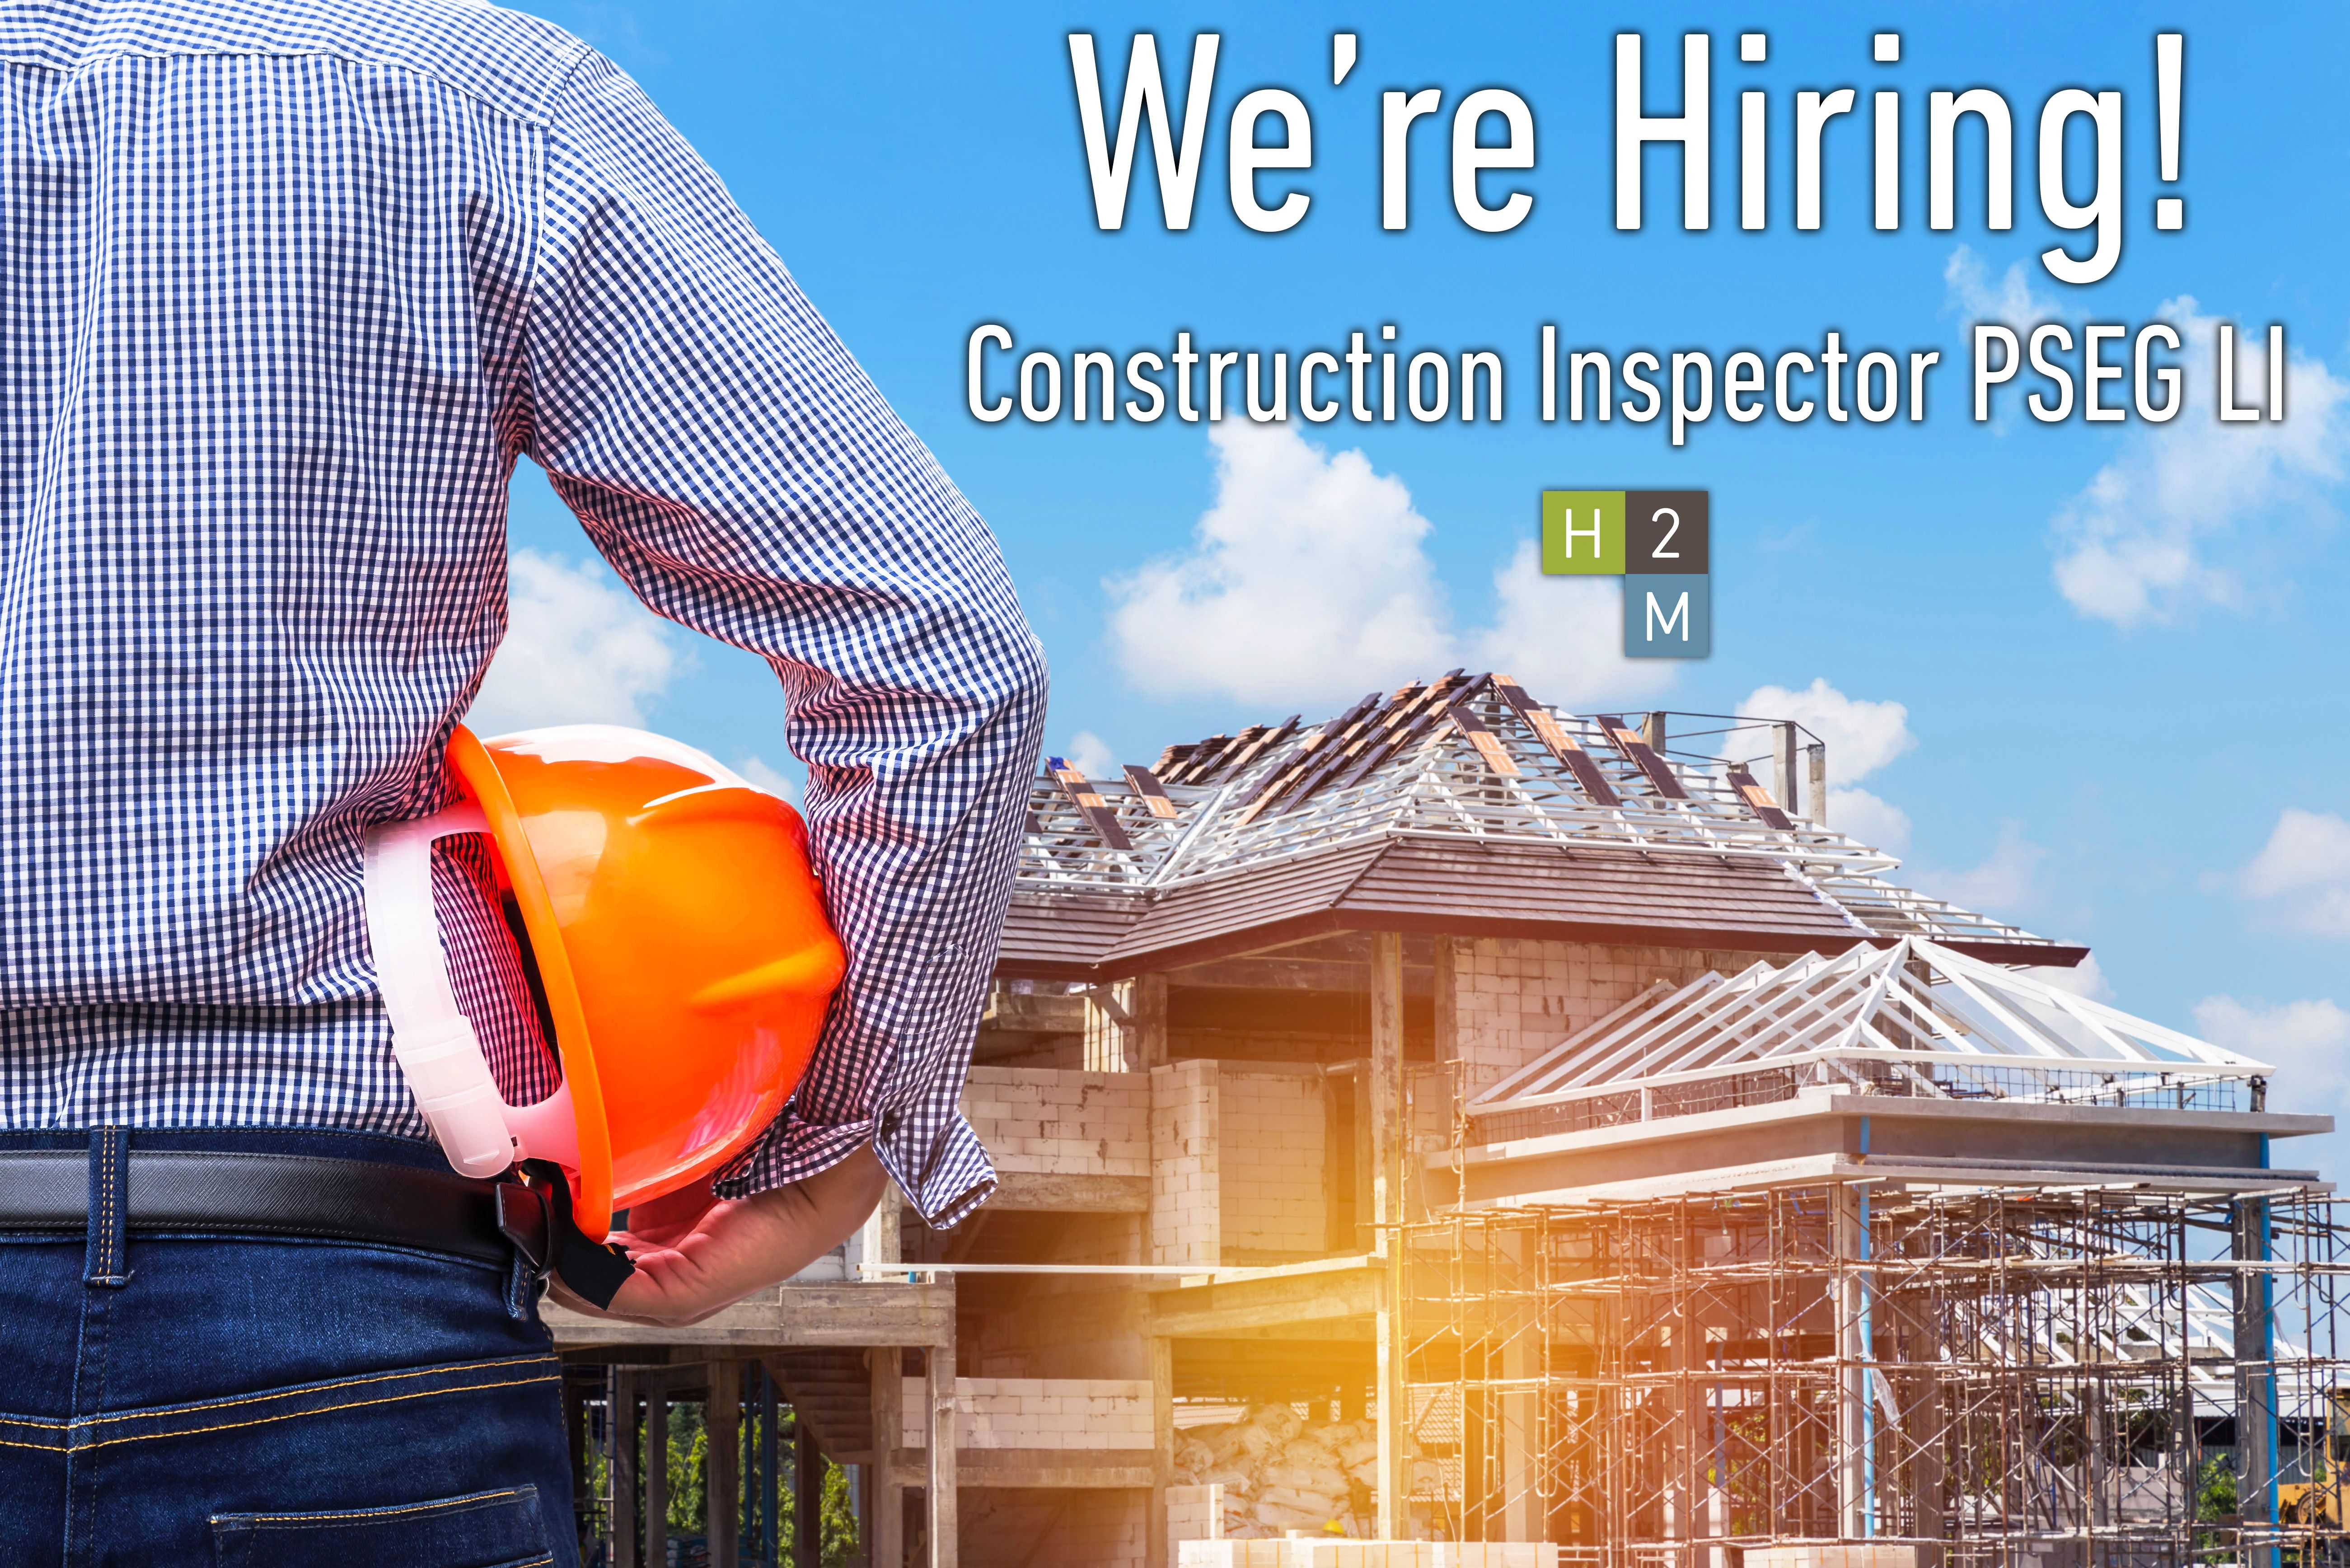 WeRe Hiring Construction Inspector Pseg Li With Five Years Of